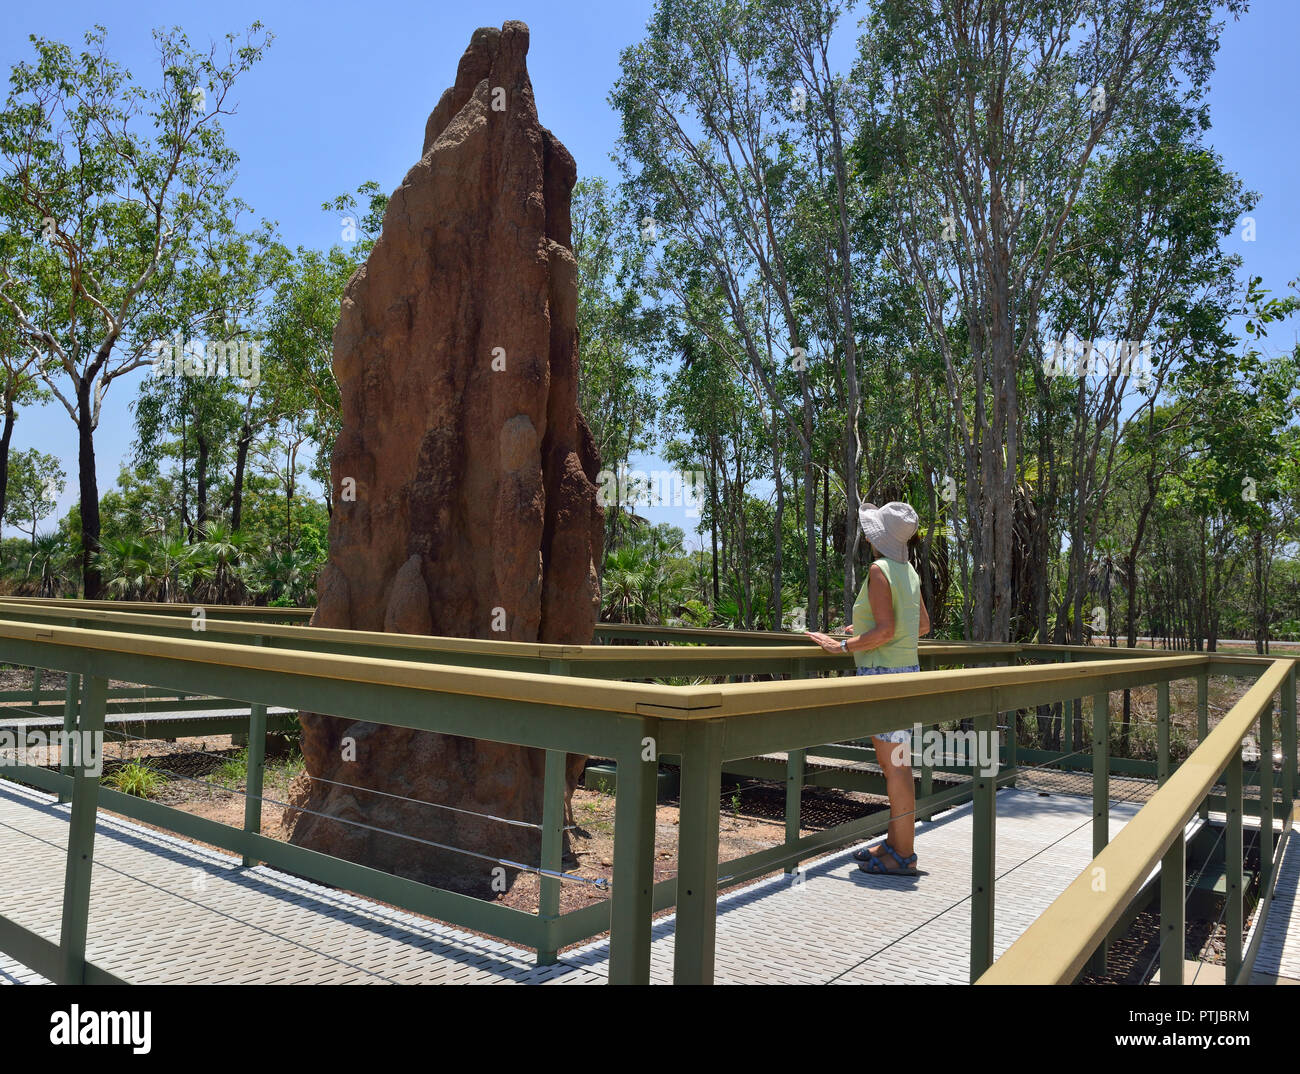 Tourist looks at Giant mound made by cathedral termites in the Litchfield National Park, Northern Territory, Australia Stock Photo